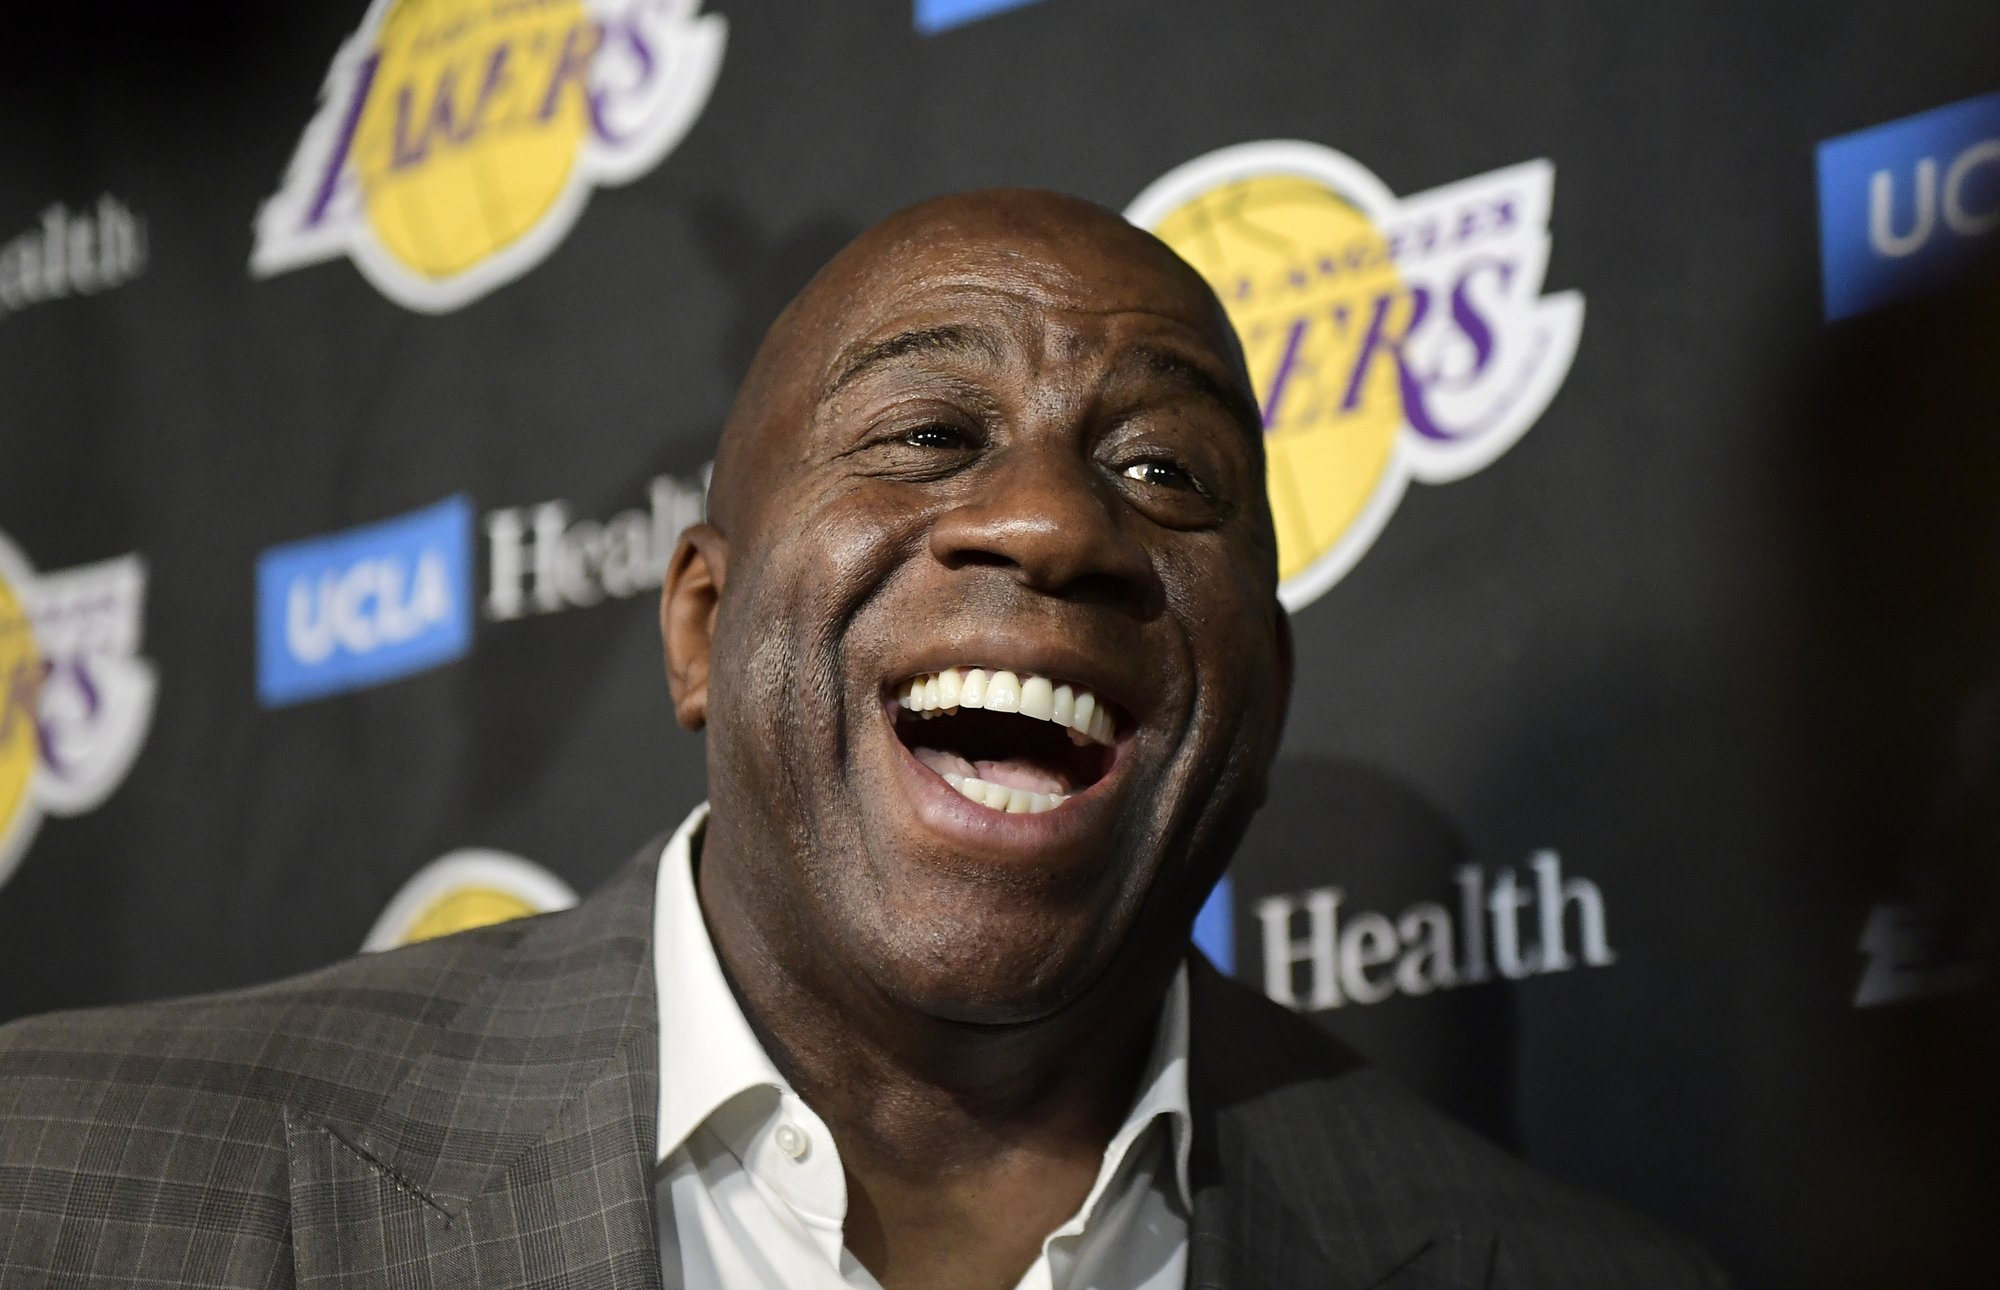 Without basketball, Magic Johnson shifts focus to community